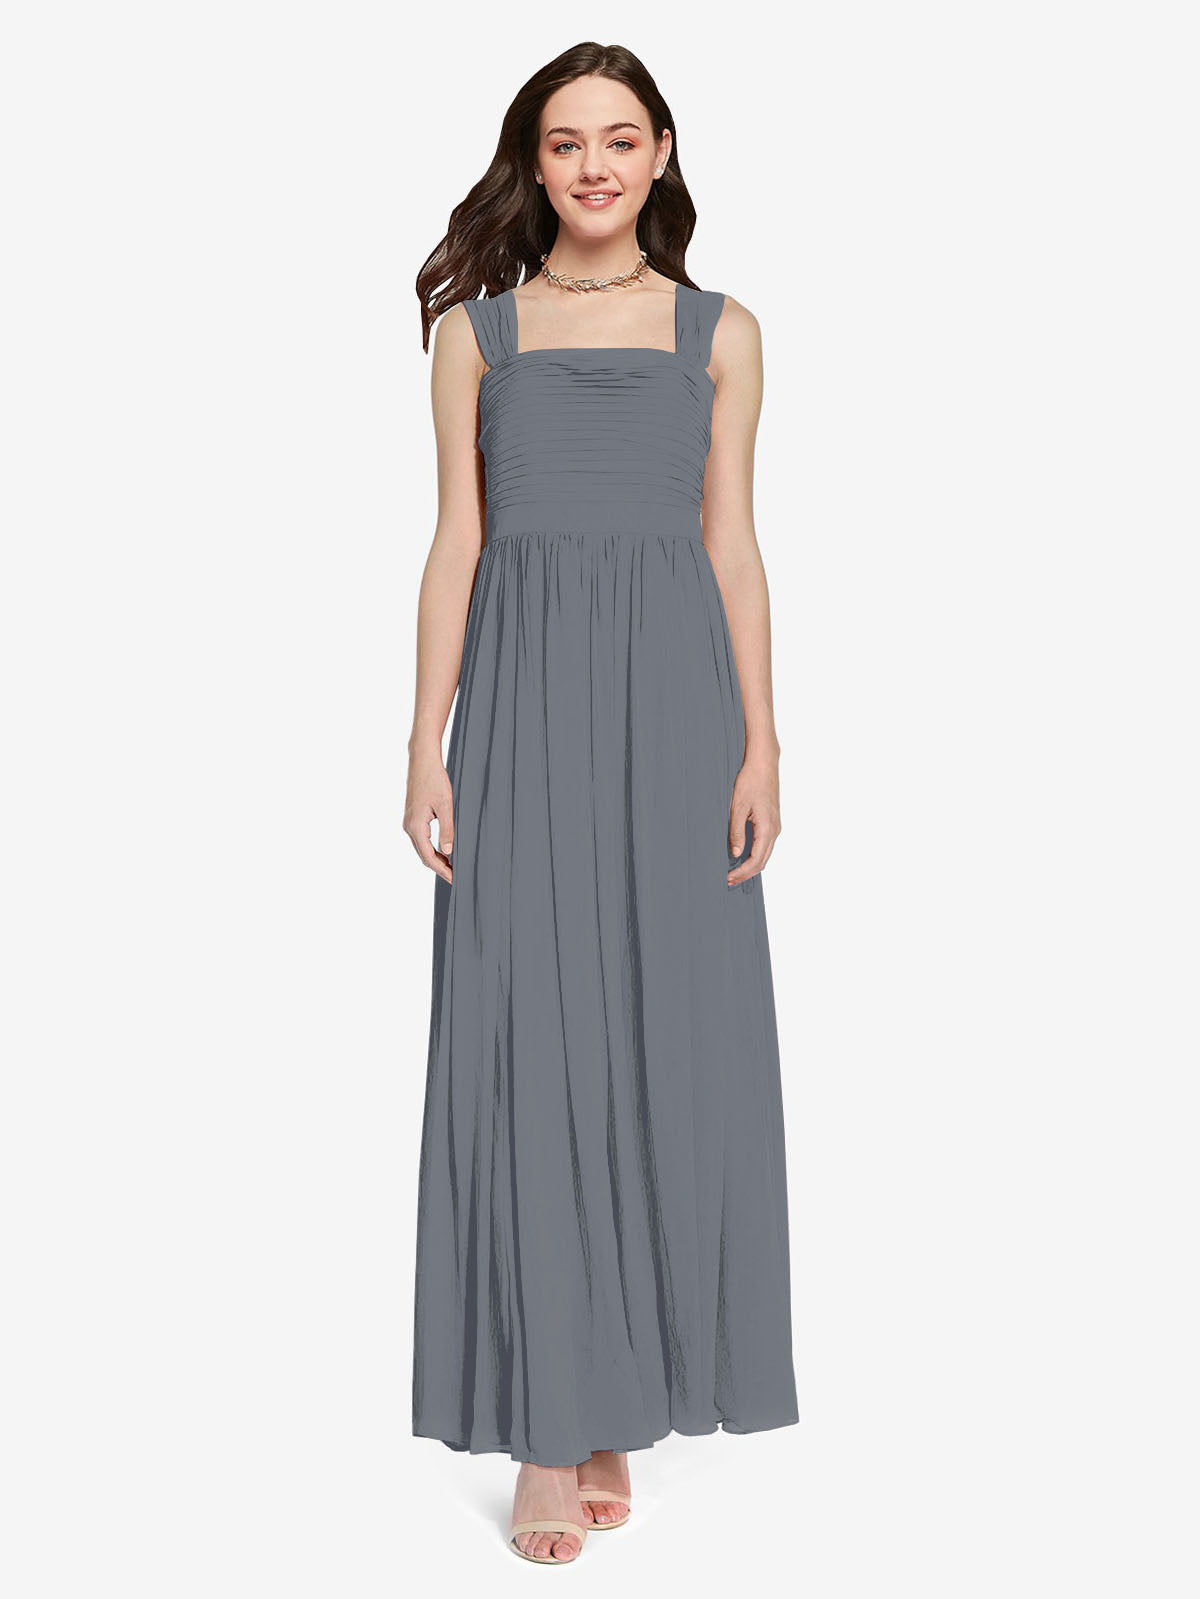 Long A-Line Square Sleeveless Slate Grey Chiffon Bridesmaid Dress Aldridge